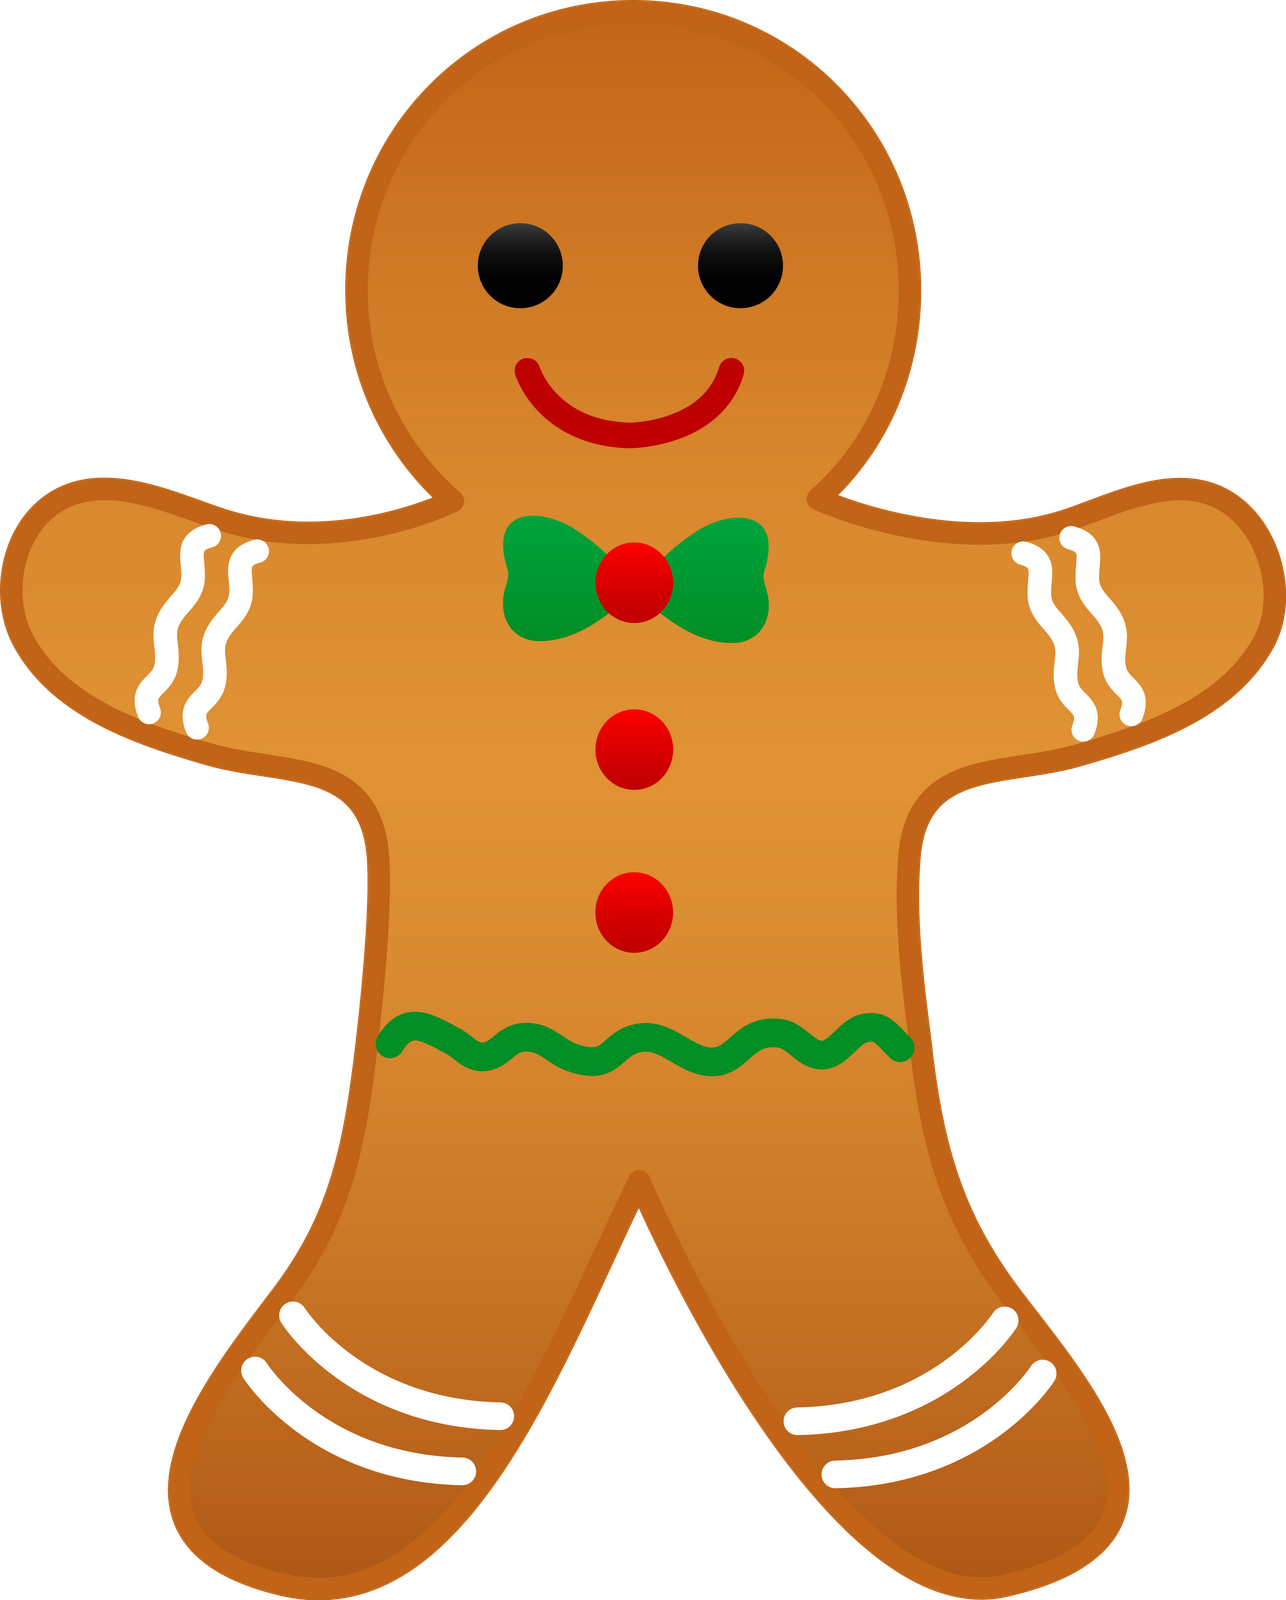 Christmas decorations clipart images - Decoration On Yellow Christmas Gingerbread Man Smiling Image Clipart